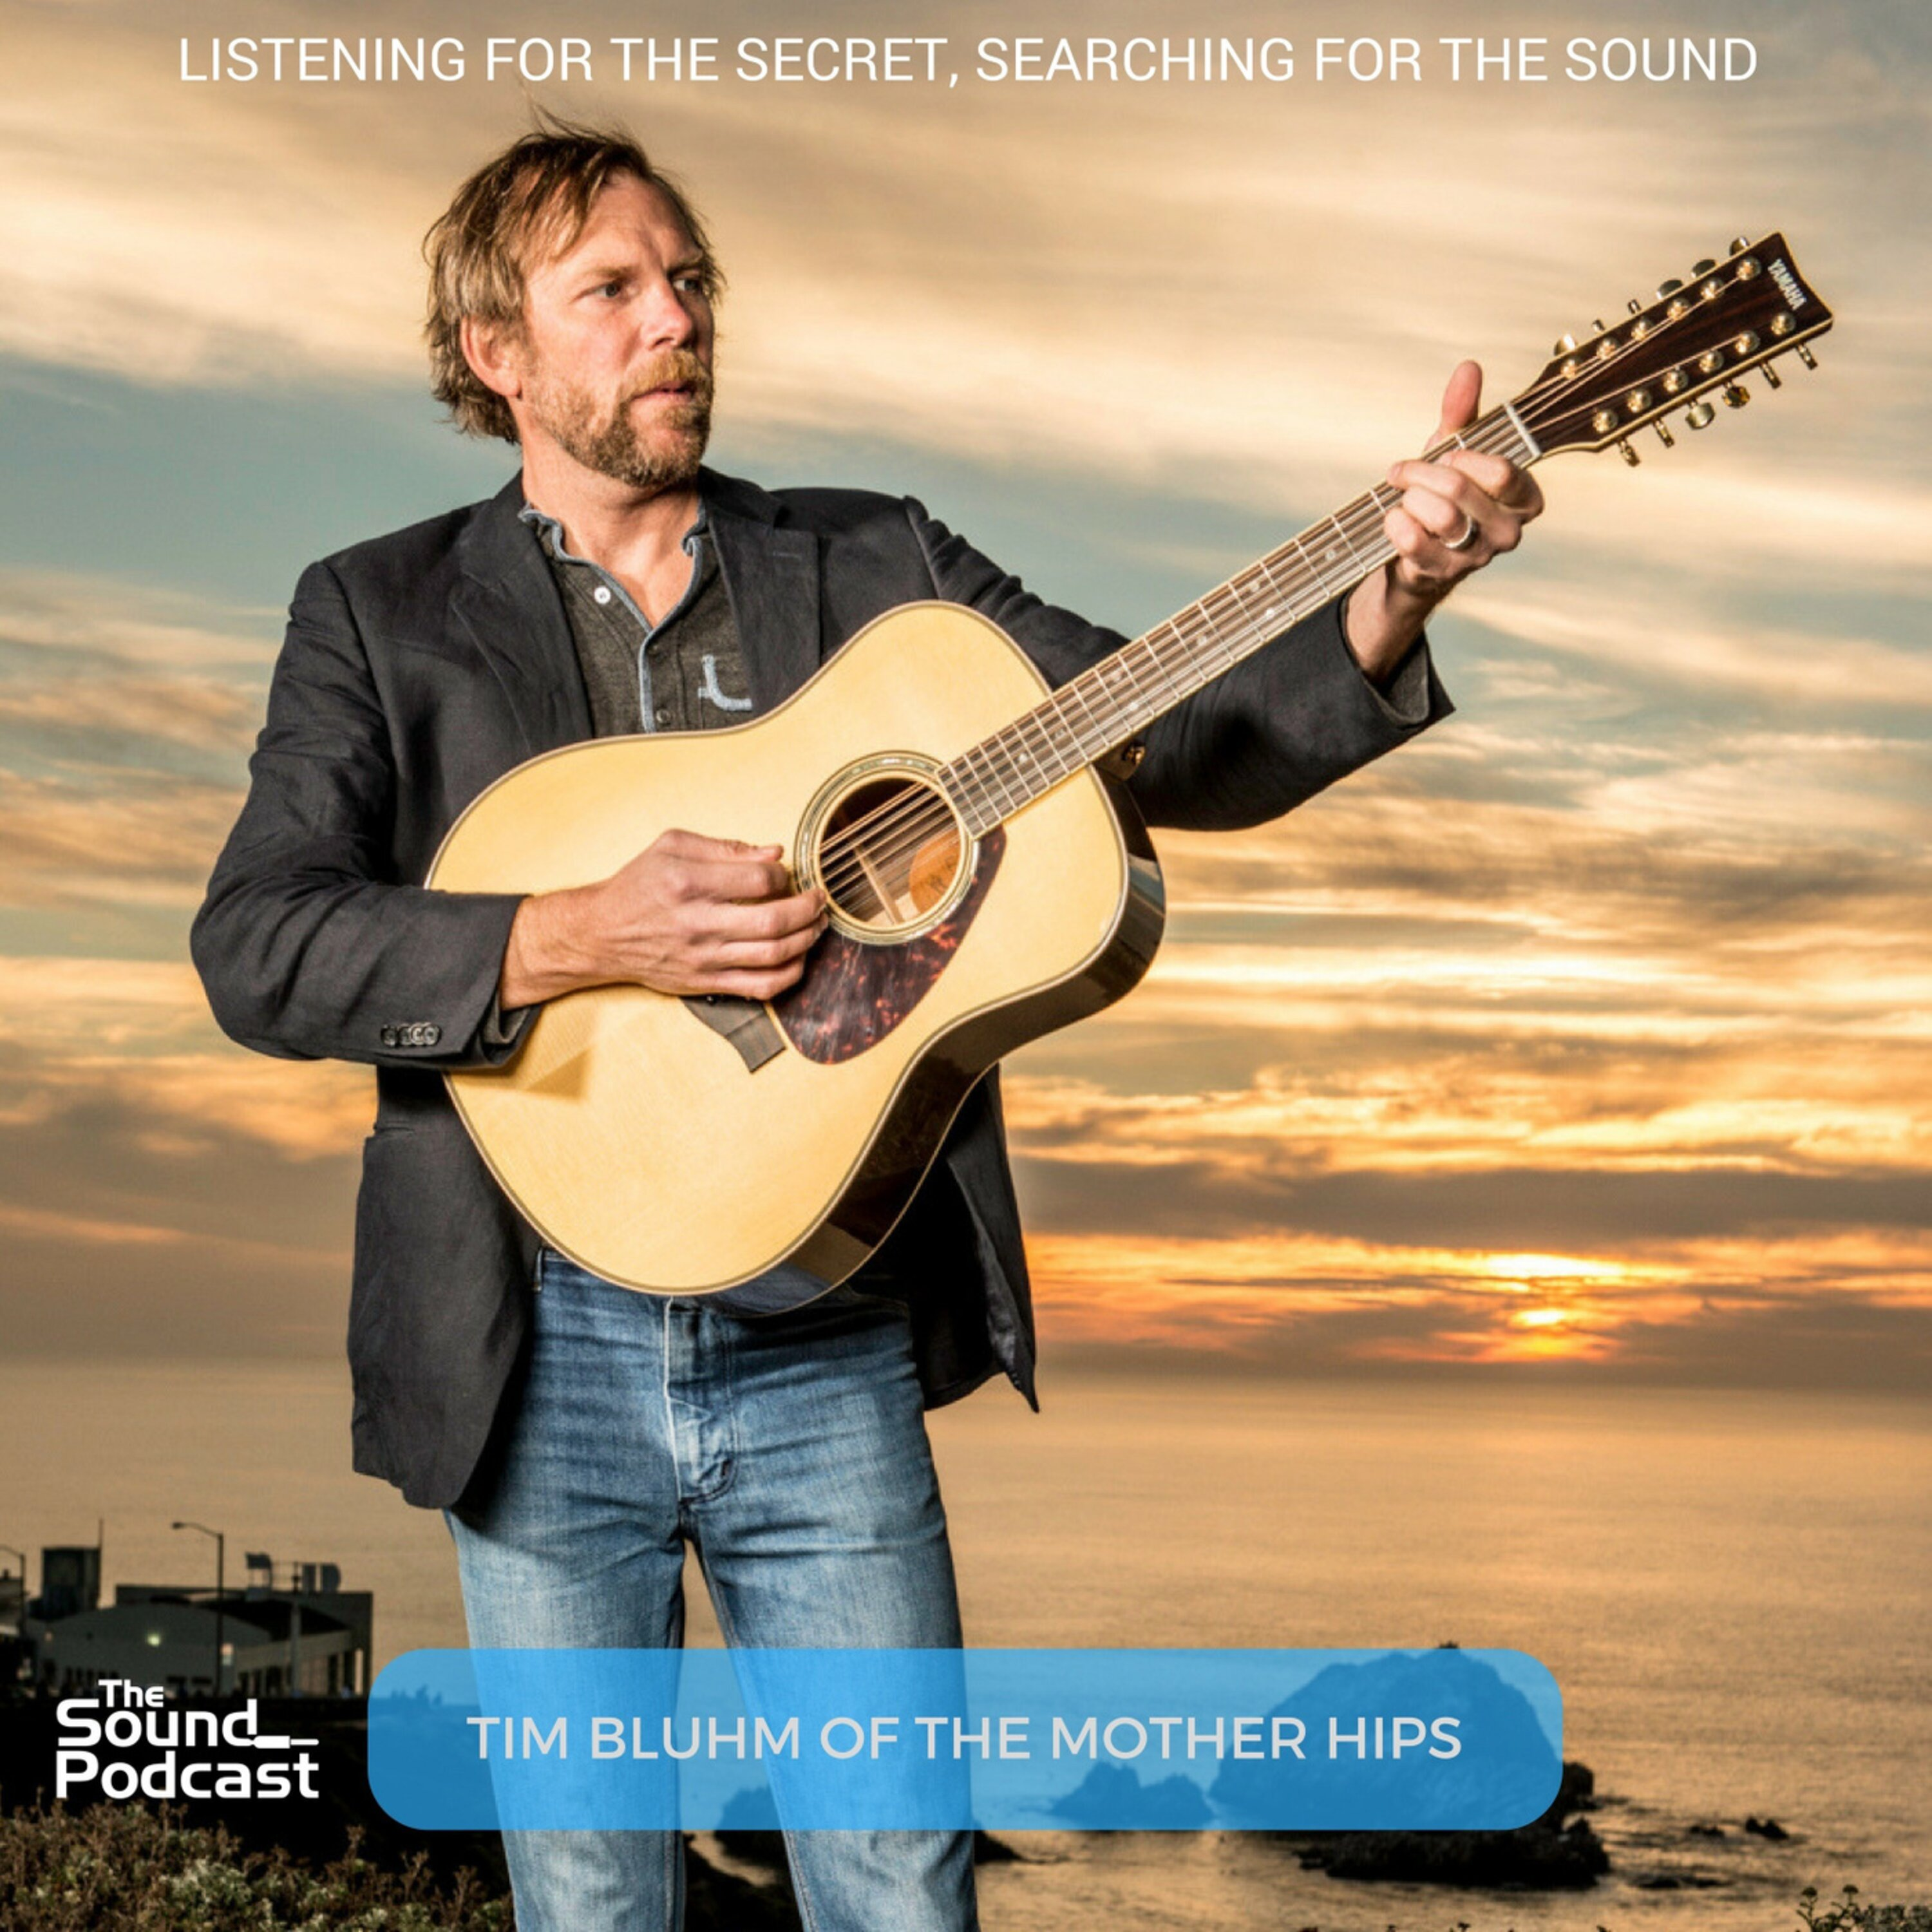 Episode 81: Tim Bluhm of The Mother Hips Image